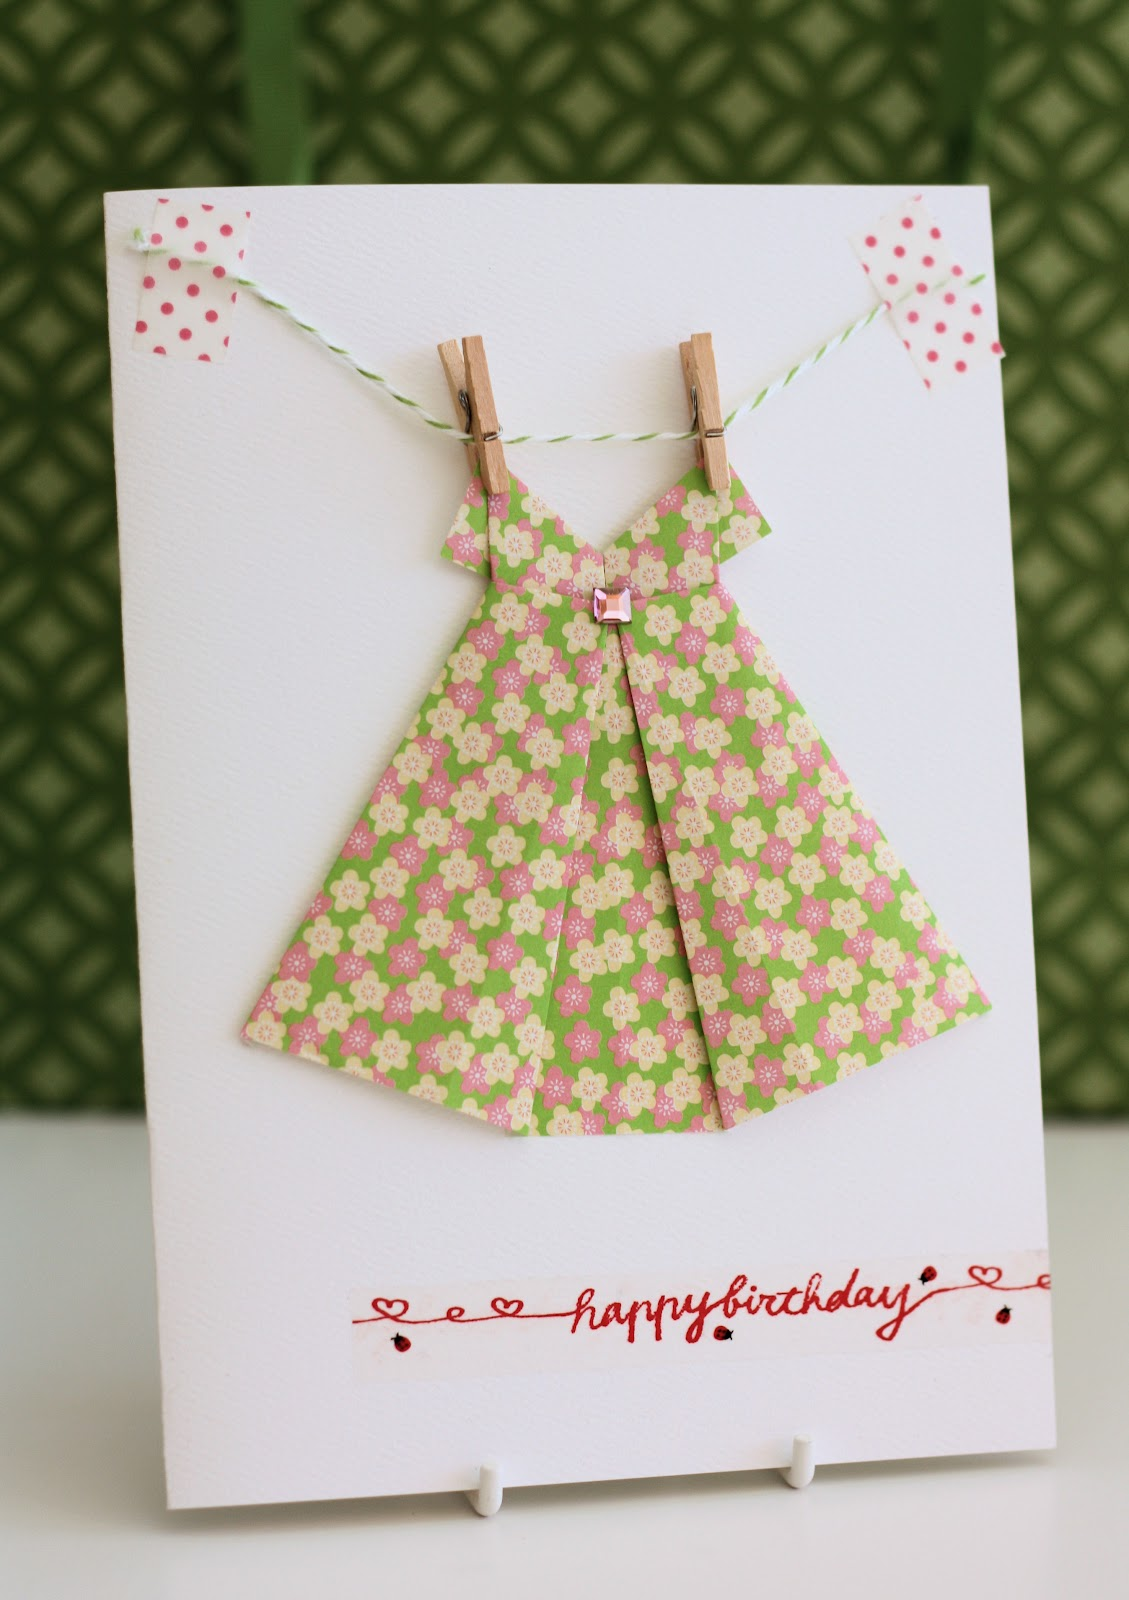 Origami Dress Card - A Spoonful of Sugar - photo#37